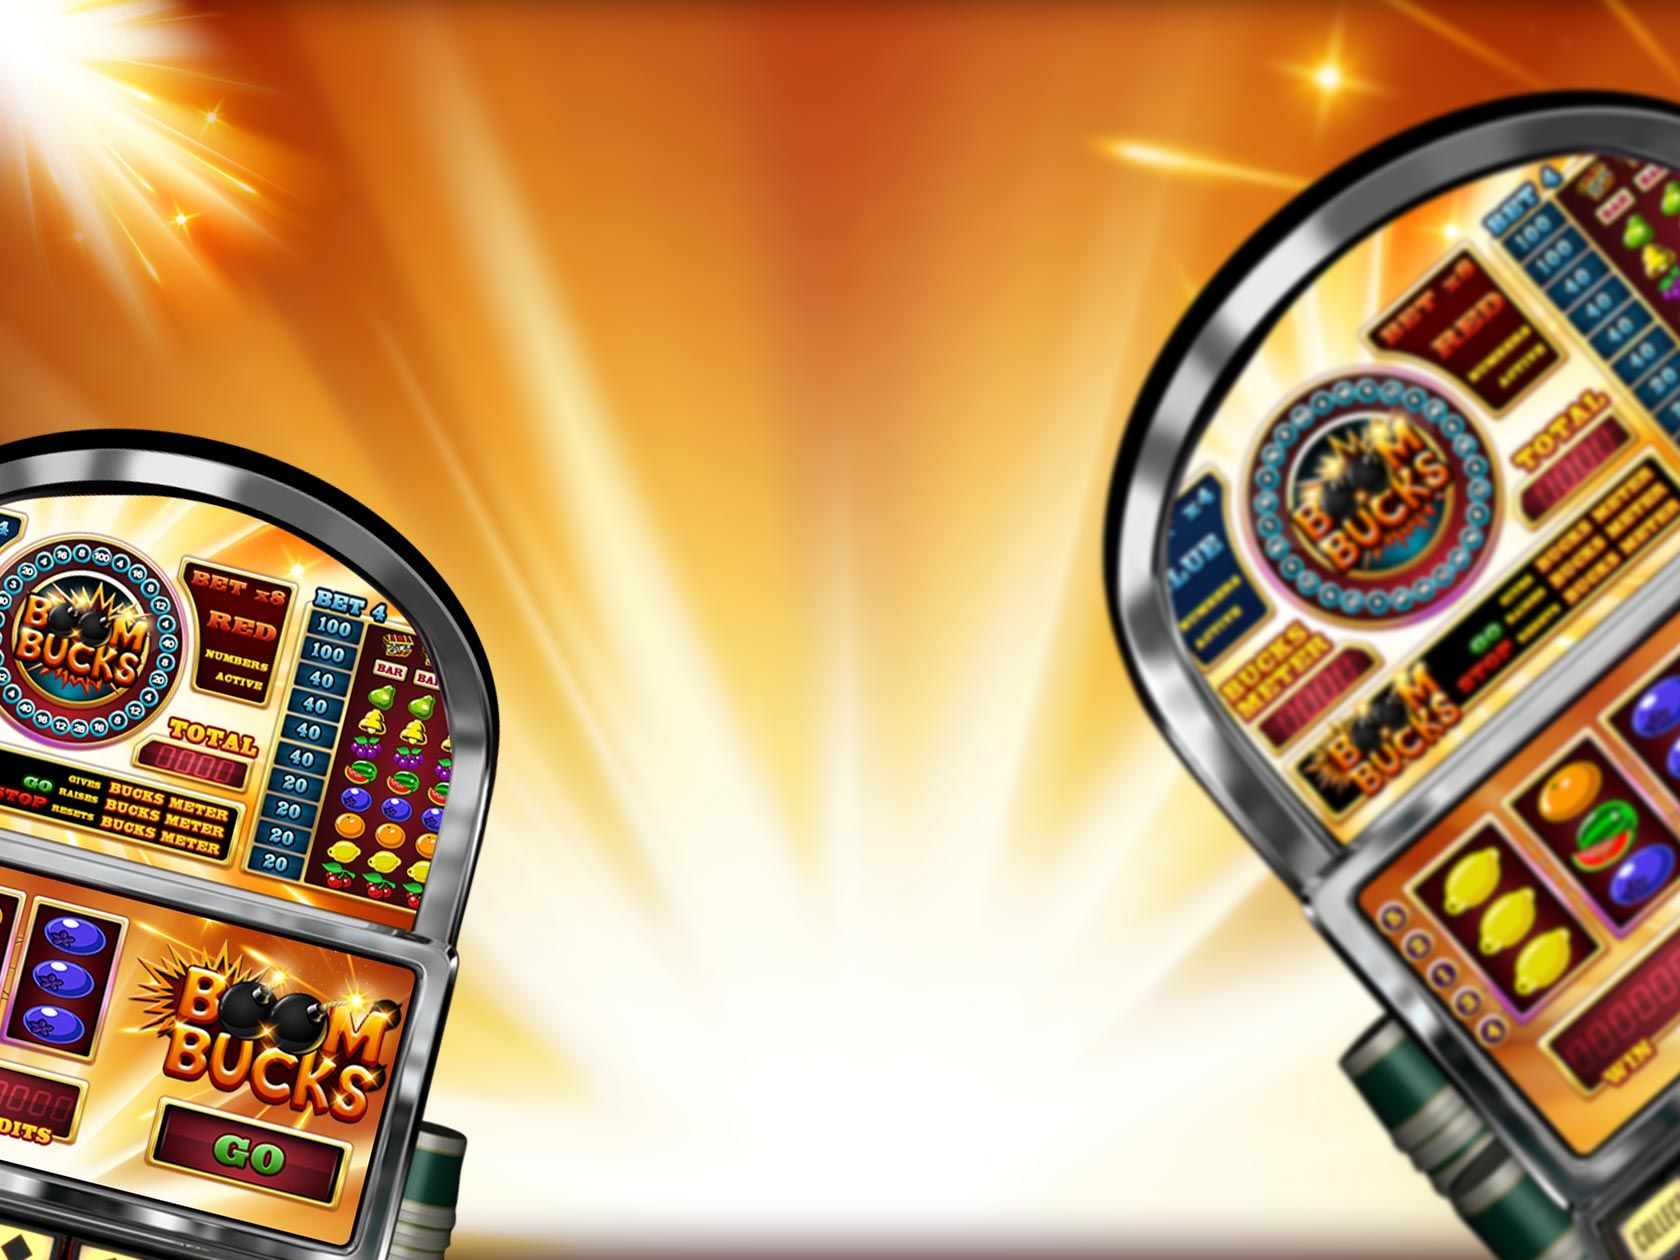 Boom Bucks Slot - Play Free Casino Slot Machine Games